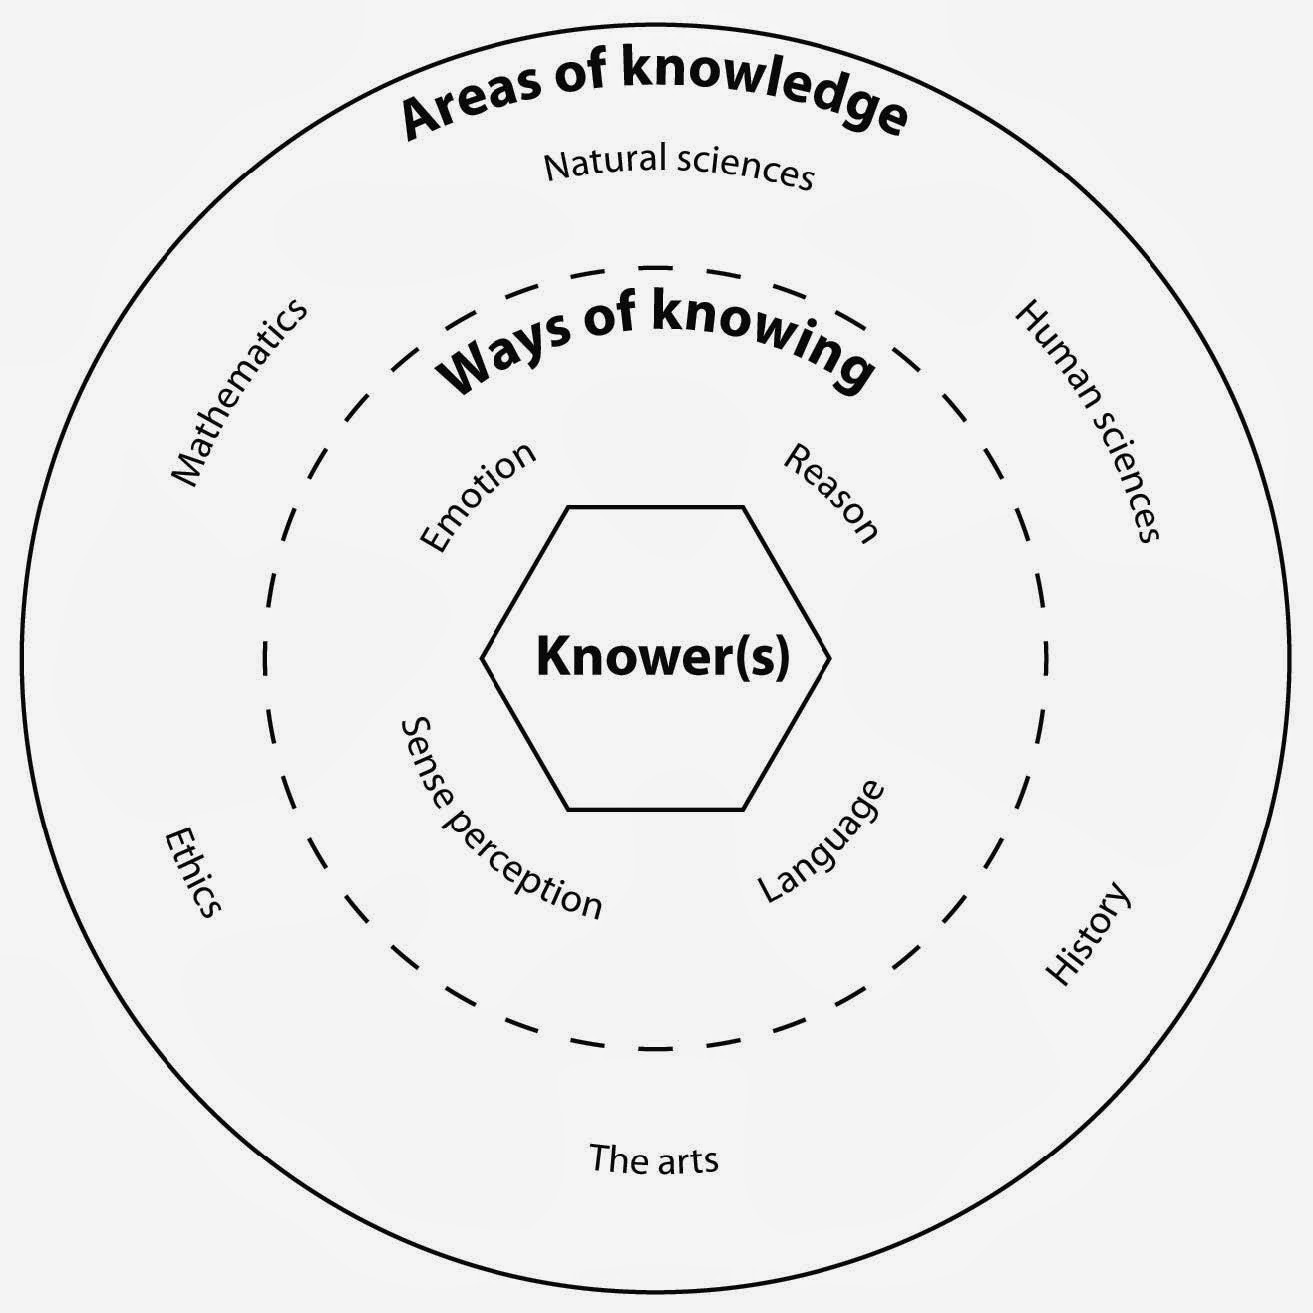 new ways of knowing added to tok diagram theory of knowledge Tok Knowledge new ways of knowing added to tok diagram